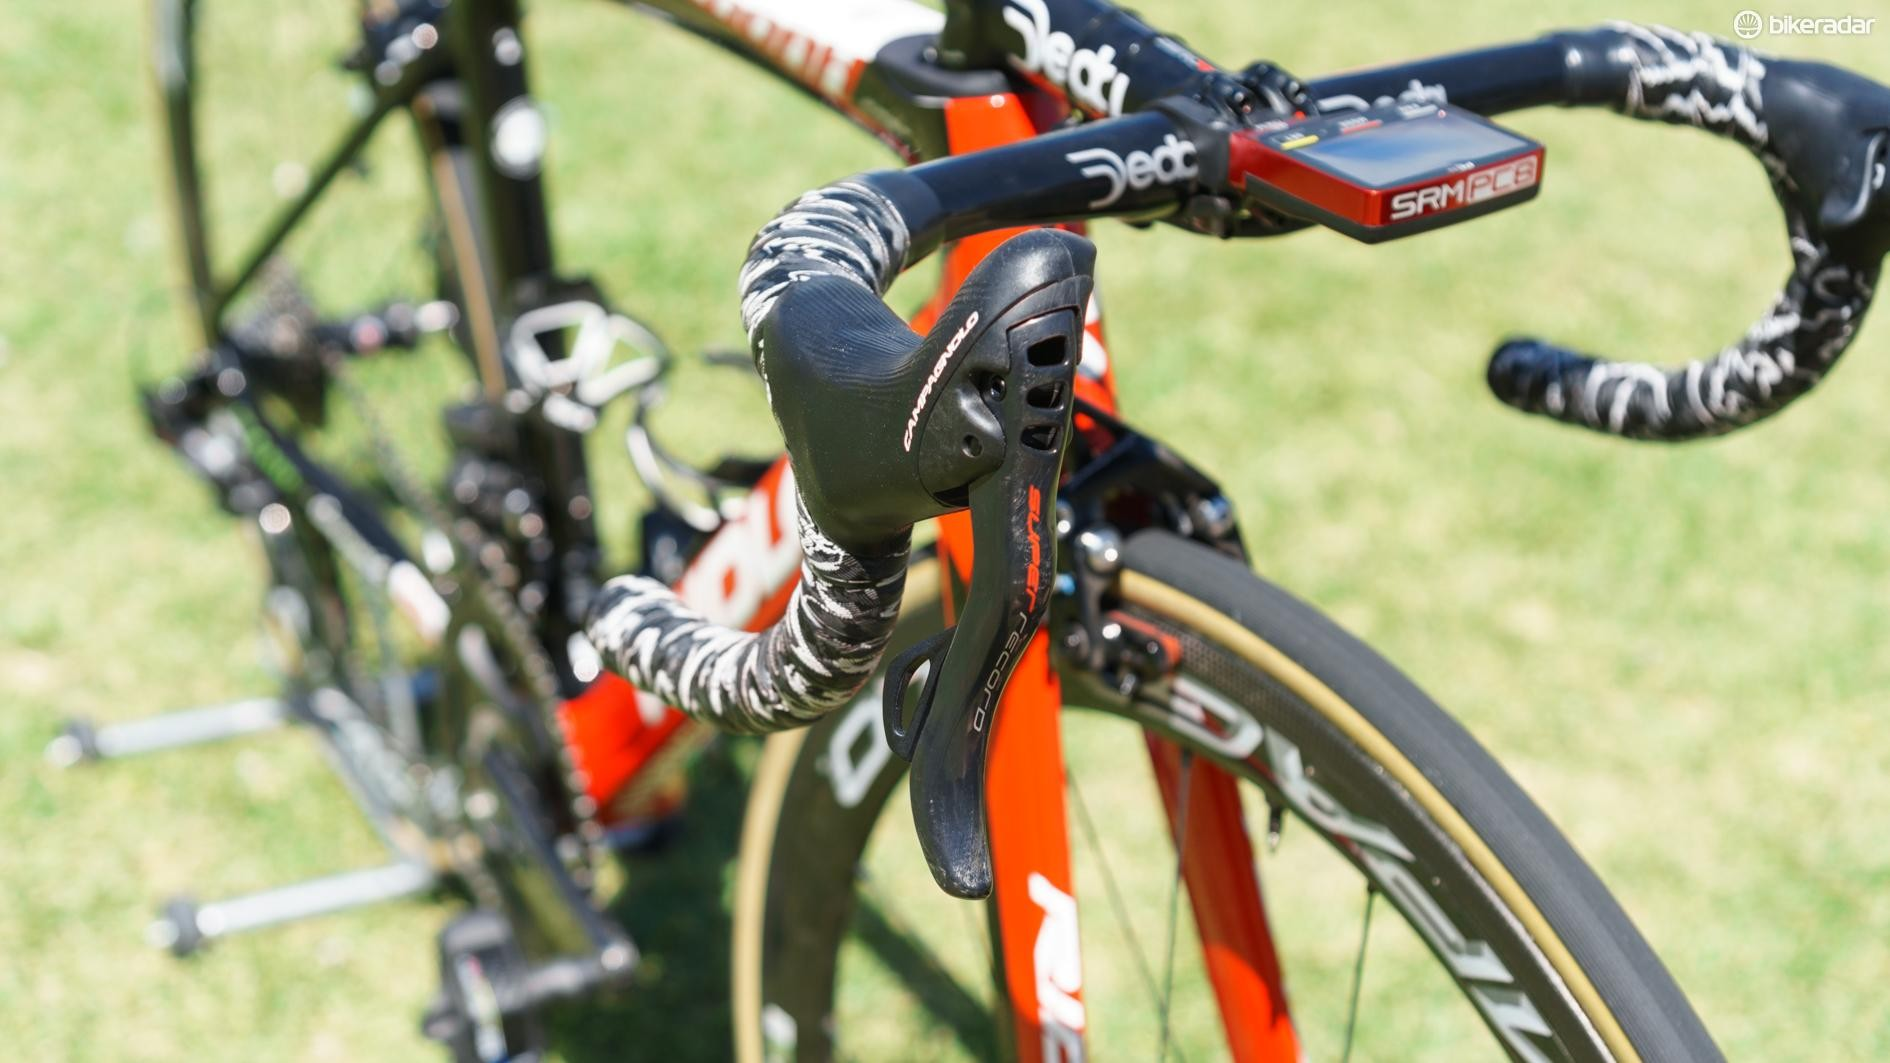 Campagnolo shifters feature a lever behind the brake levers and a thumb button